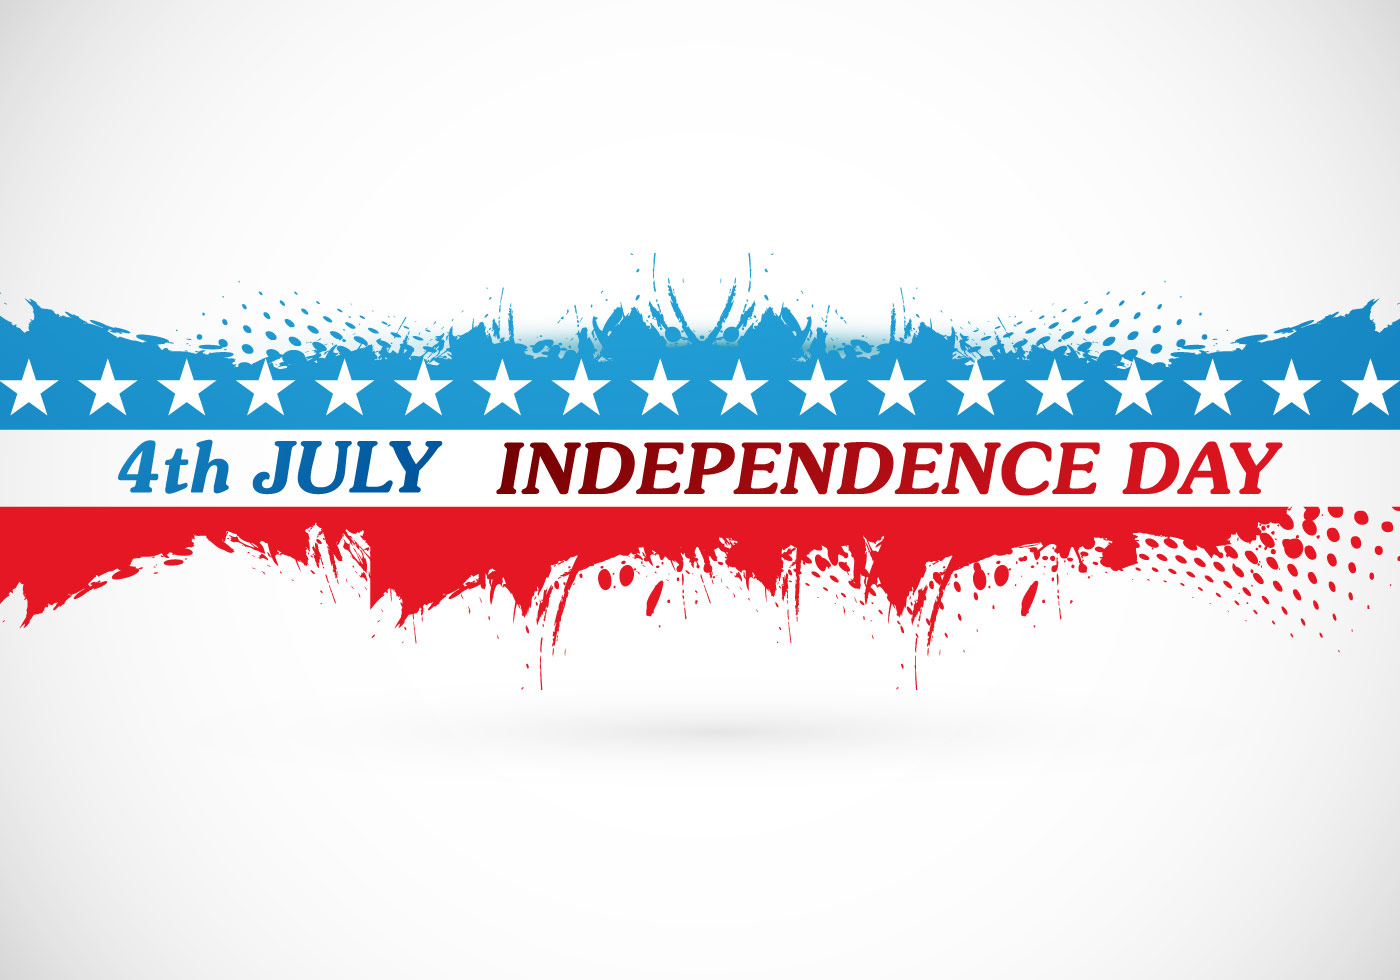 4th July Independence Day Card - Download Free Vectors ... (1400 x 980 Pixel)